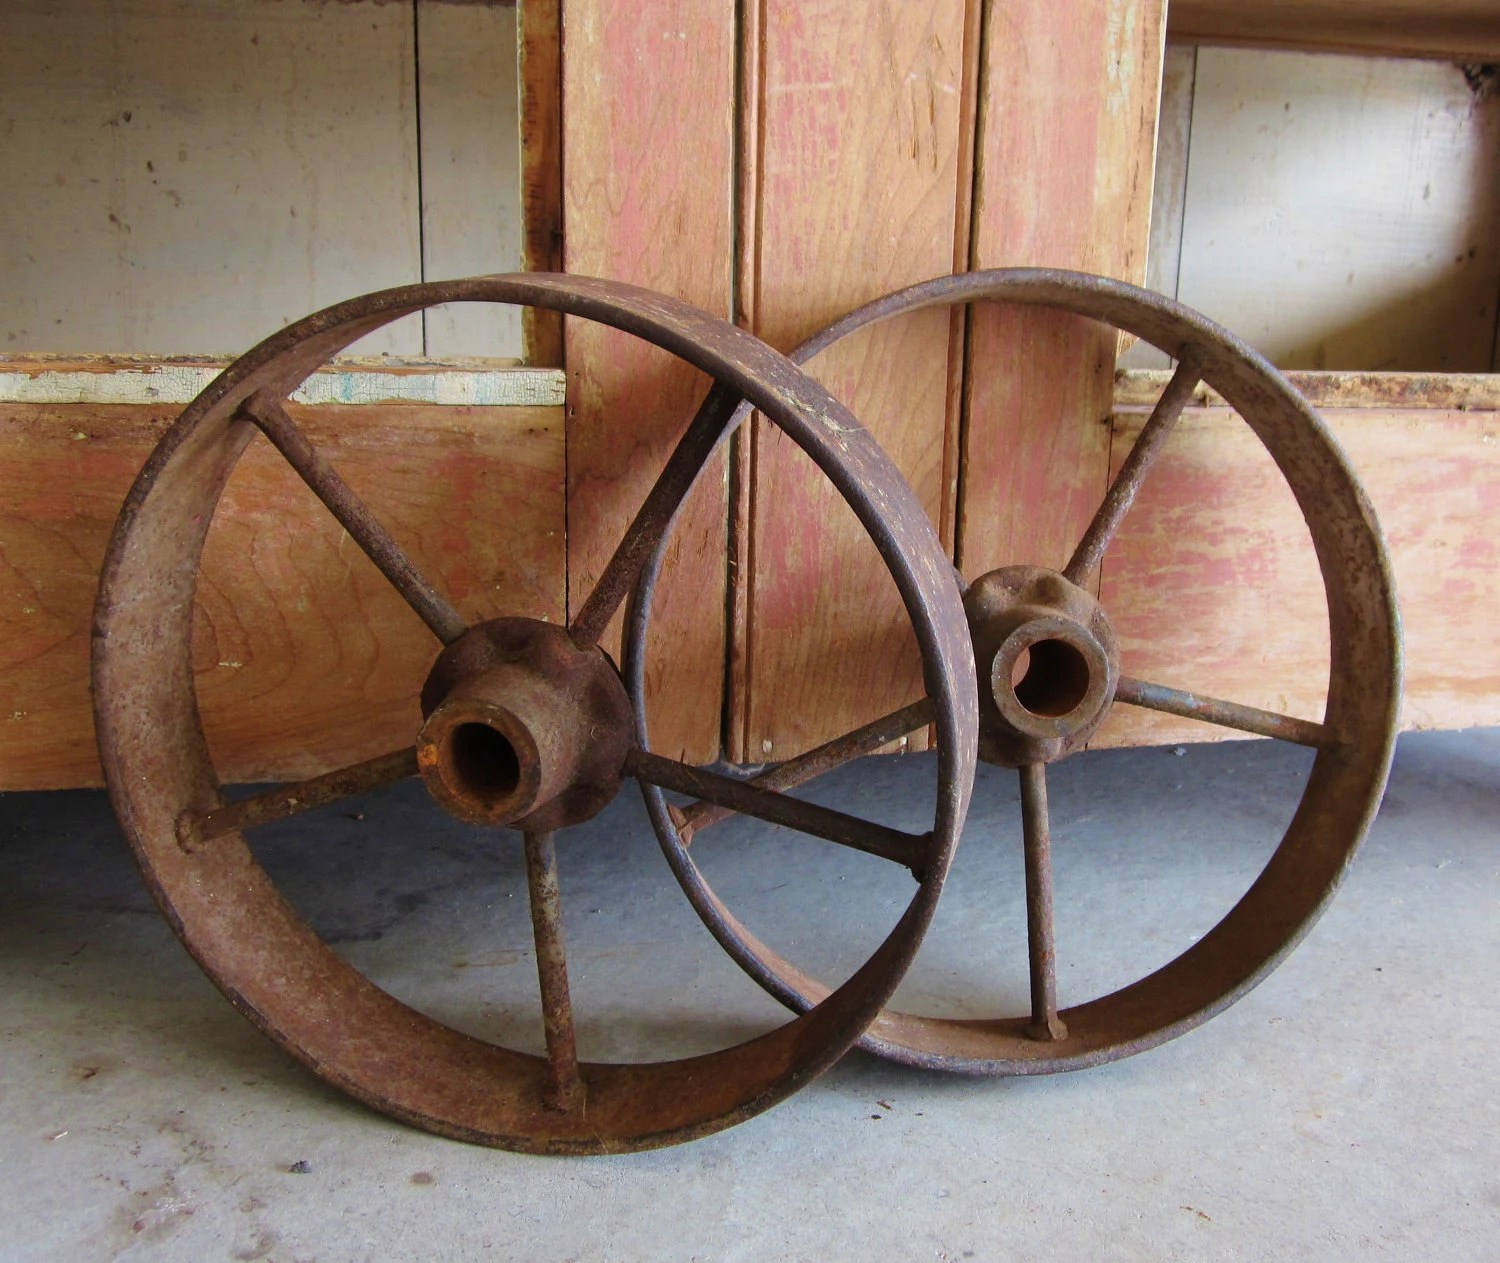 Antique Cast Iron Wagon Wheels Rustic by LittleRedPolkaDots